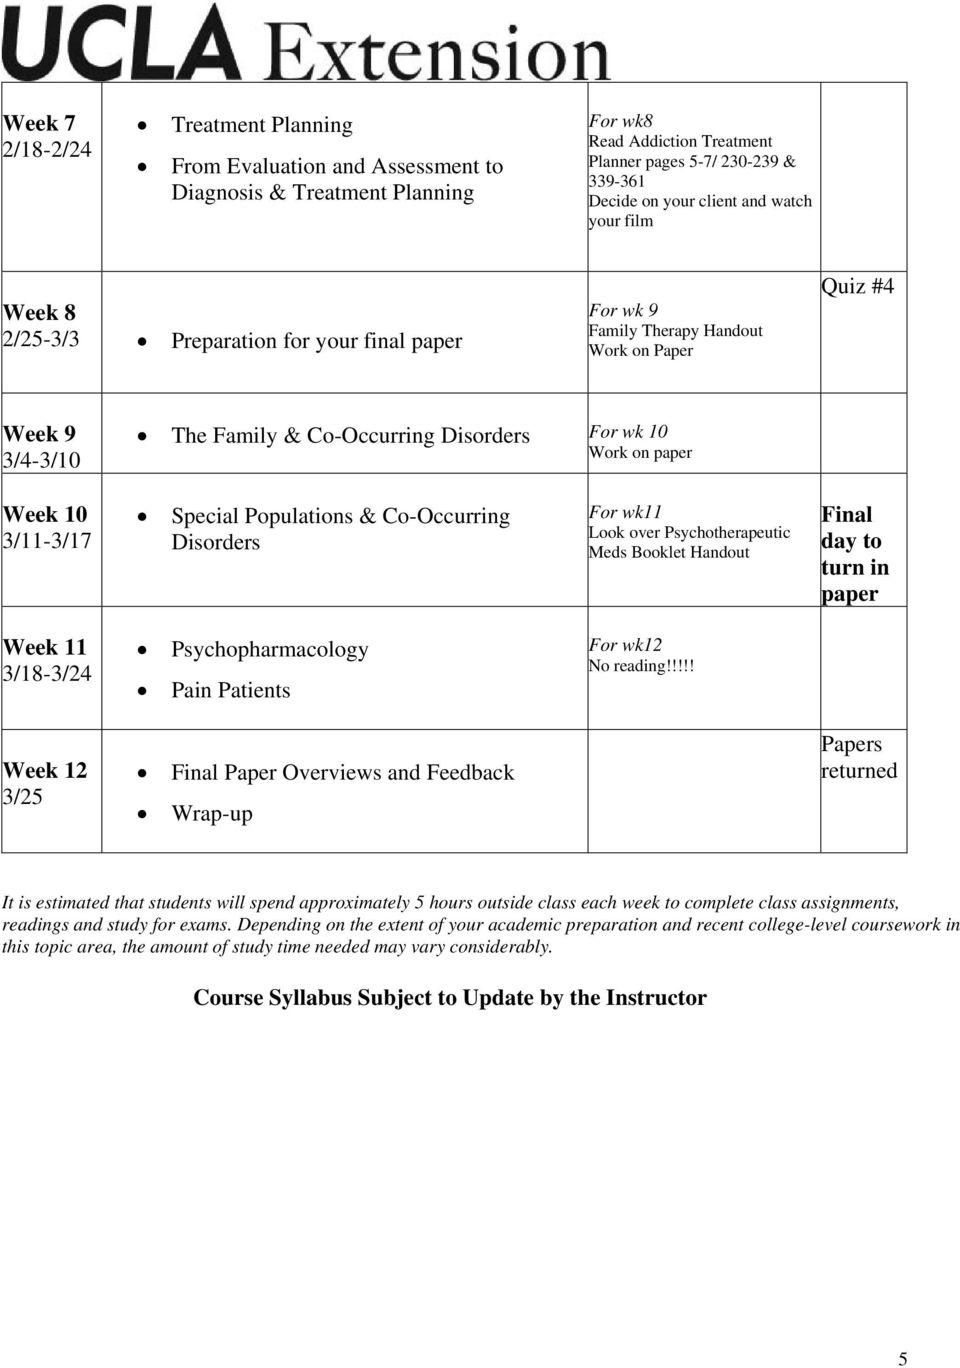 10 3/11-3/17 Special Populations & Co-Occurring Disorders For wk11 Look over Psychotherapeutic Meds Booklet Handout Final day to turn in paper Week 11 3/18-3/24 Psychopharmacology Pain Patients For